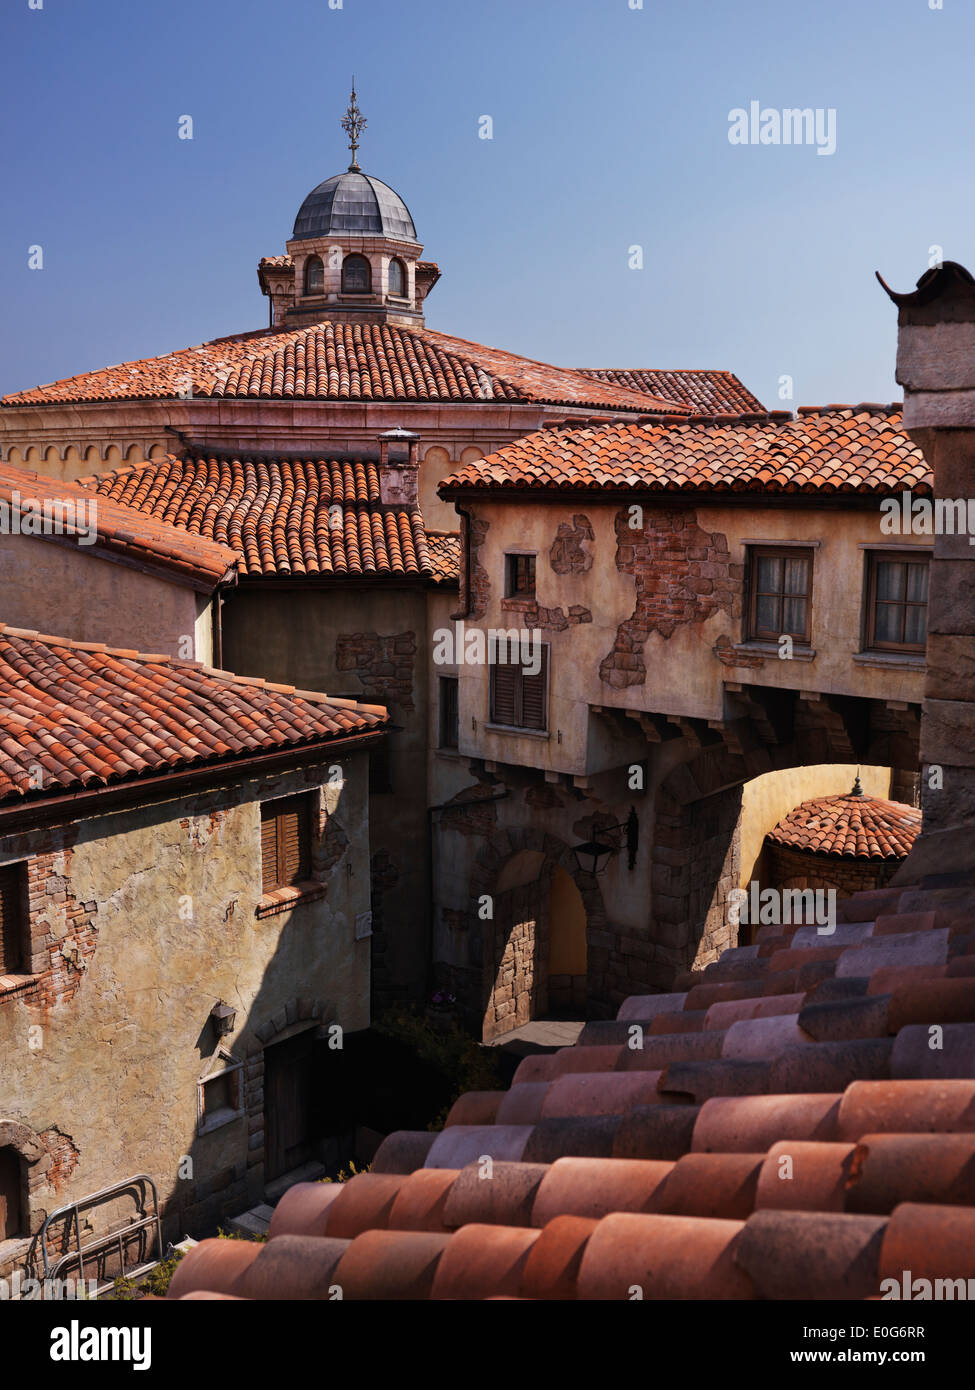 Tiled roofs of old houses in a town built in Venetian architectural style at Tokyo Disneysea - Stock Image